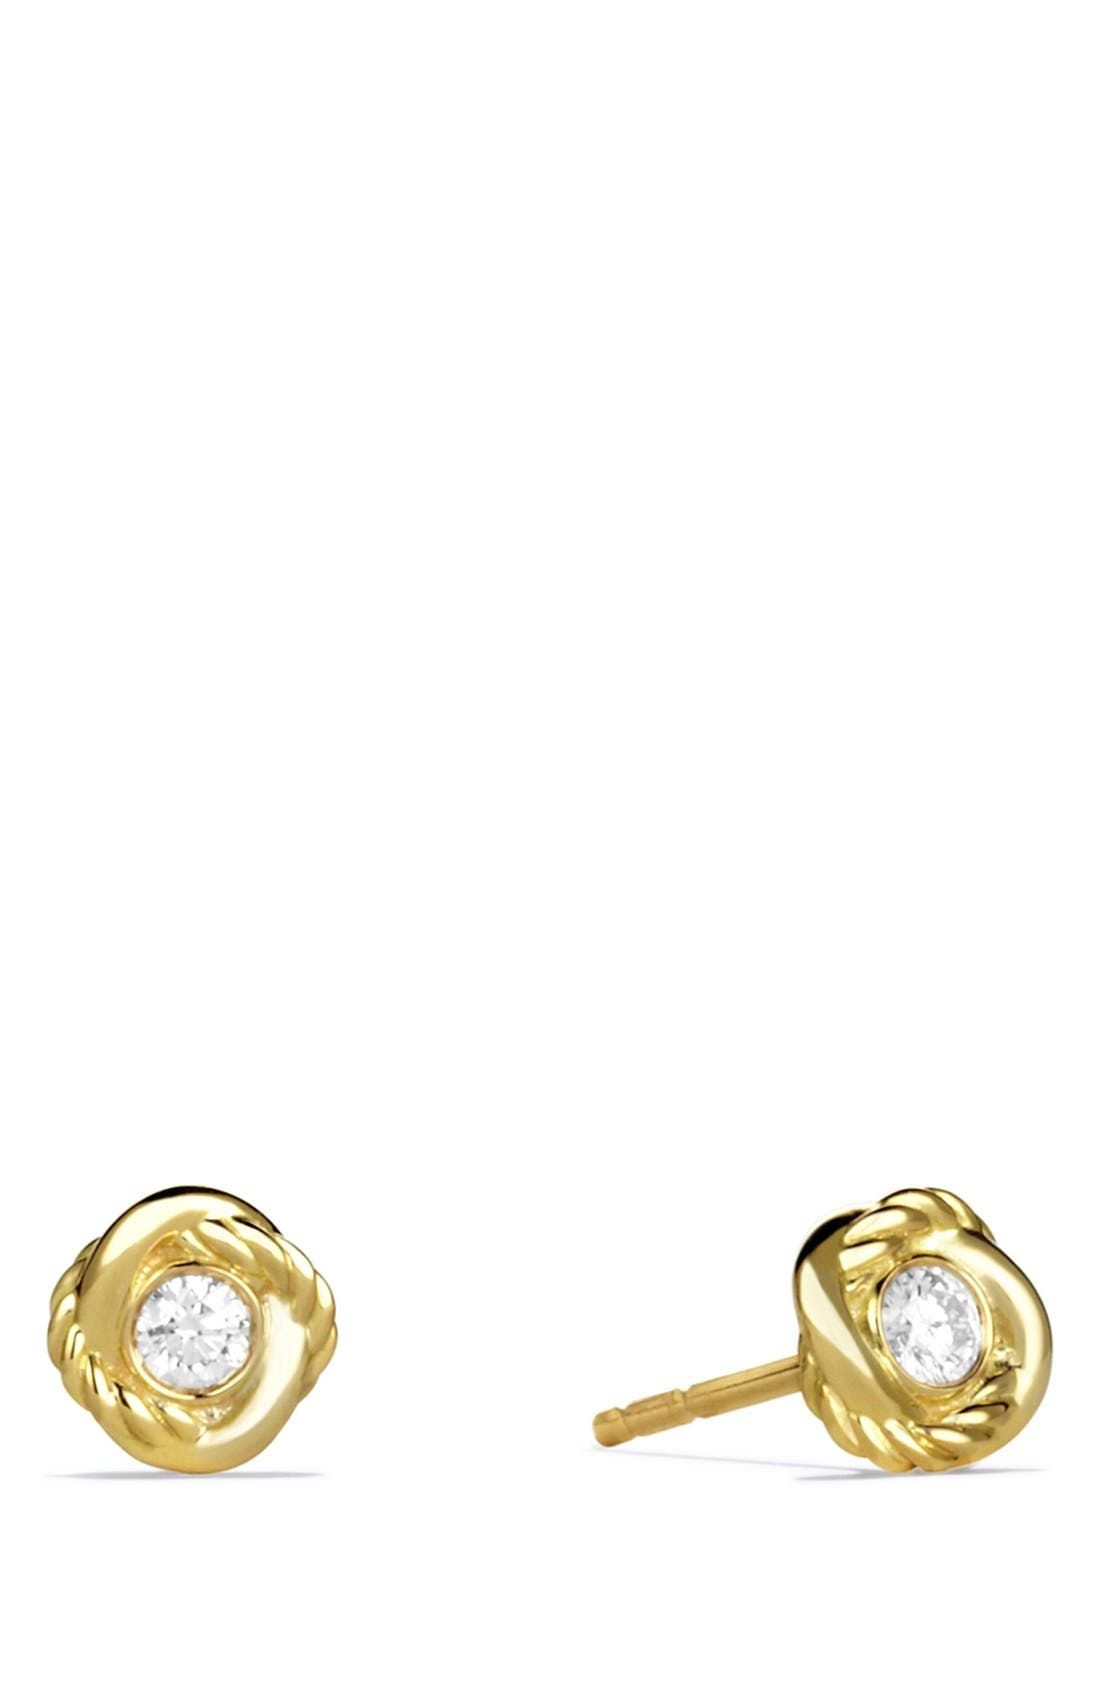 Main Image - David Yurman 'Infinity' Earrings with Diamonds in Gold